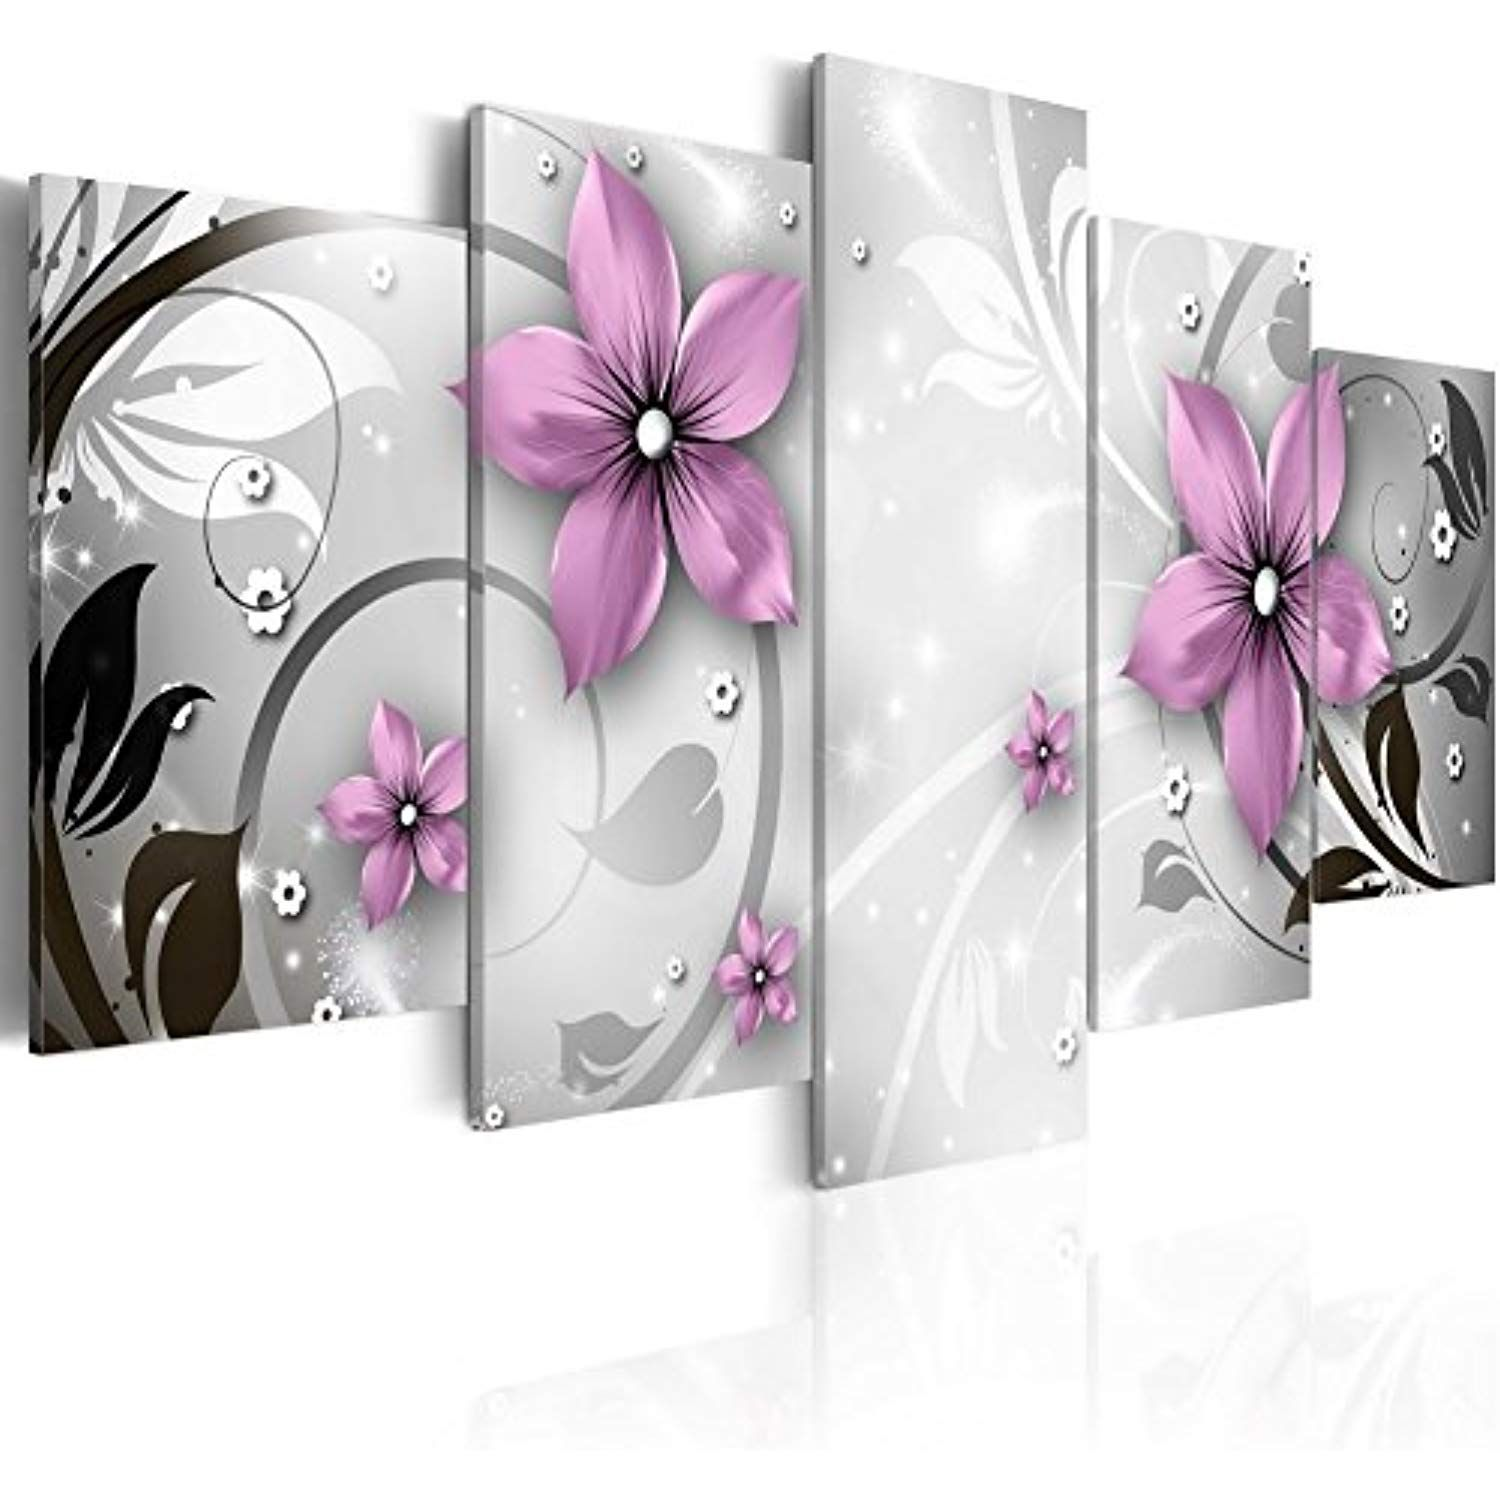 Giant Saucy Flower Canvas Wall Art Print Purple Floral Painting Modern Picture 5 Panel Home Decor Hd White Ove Flower Canvas Wall Art Flower Canvas Wall Canvas